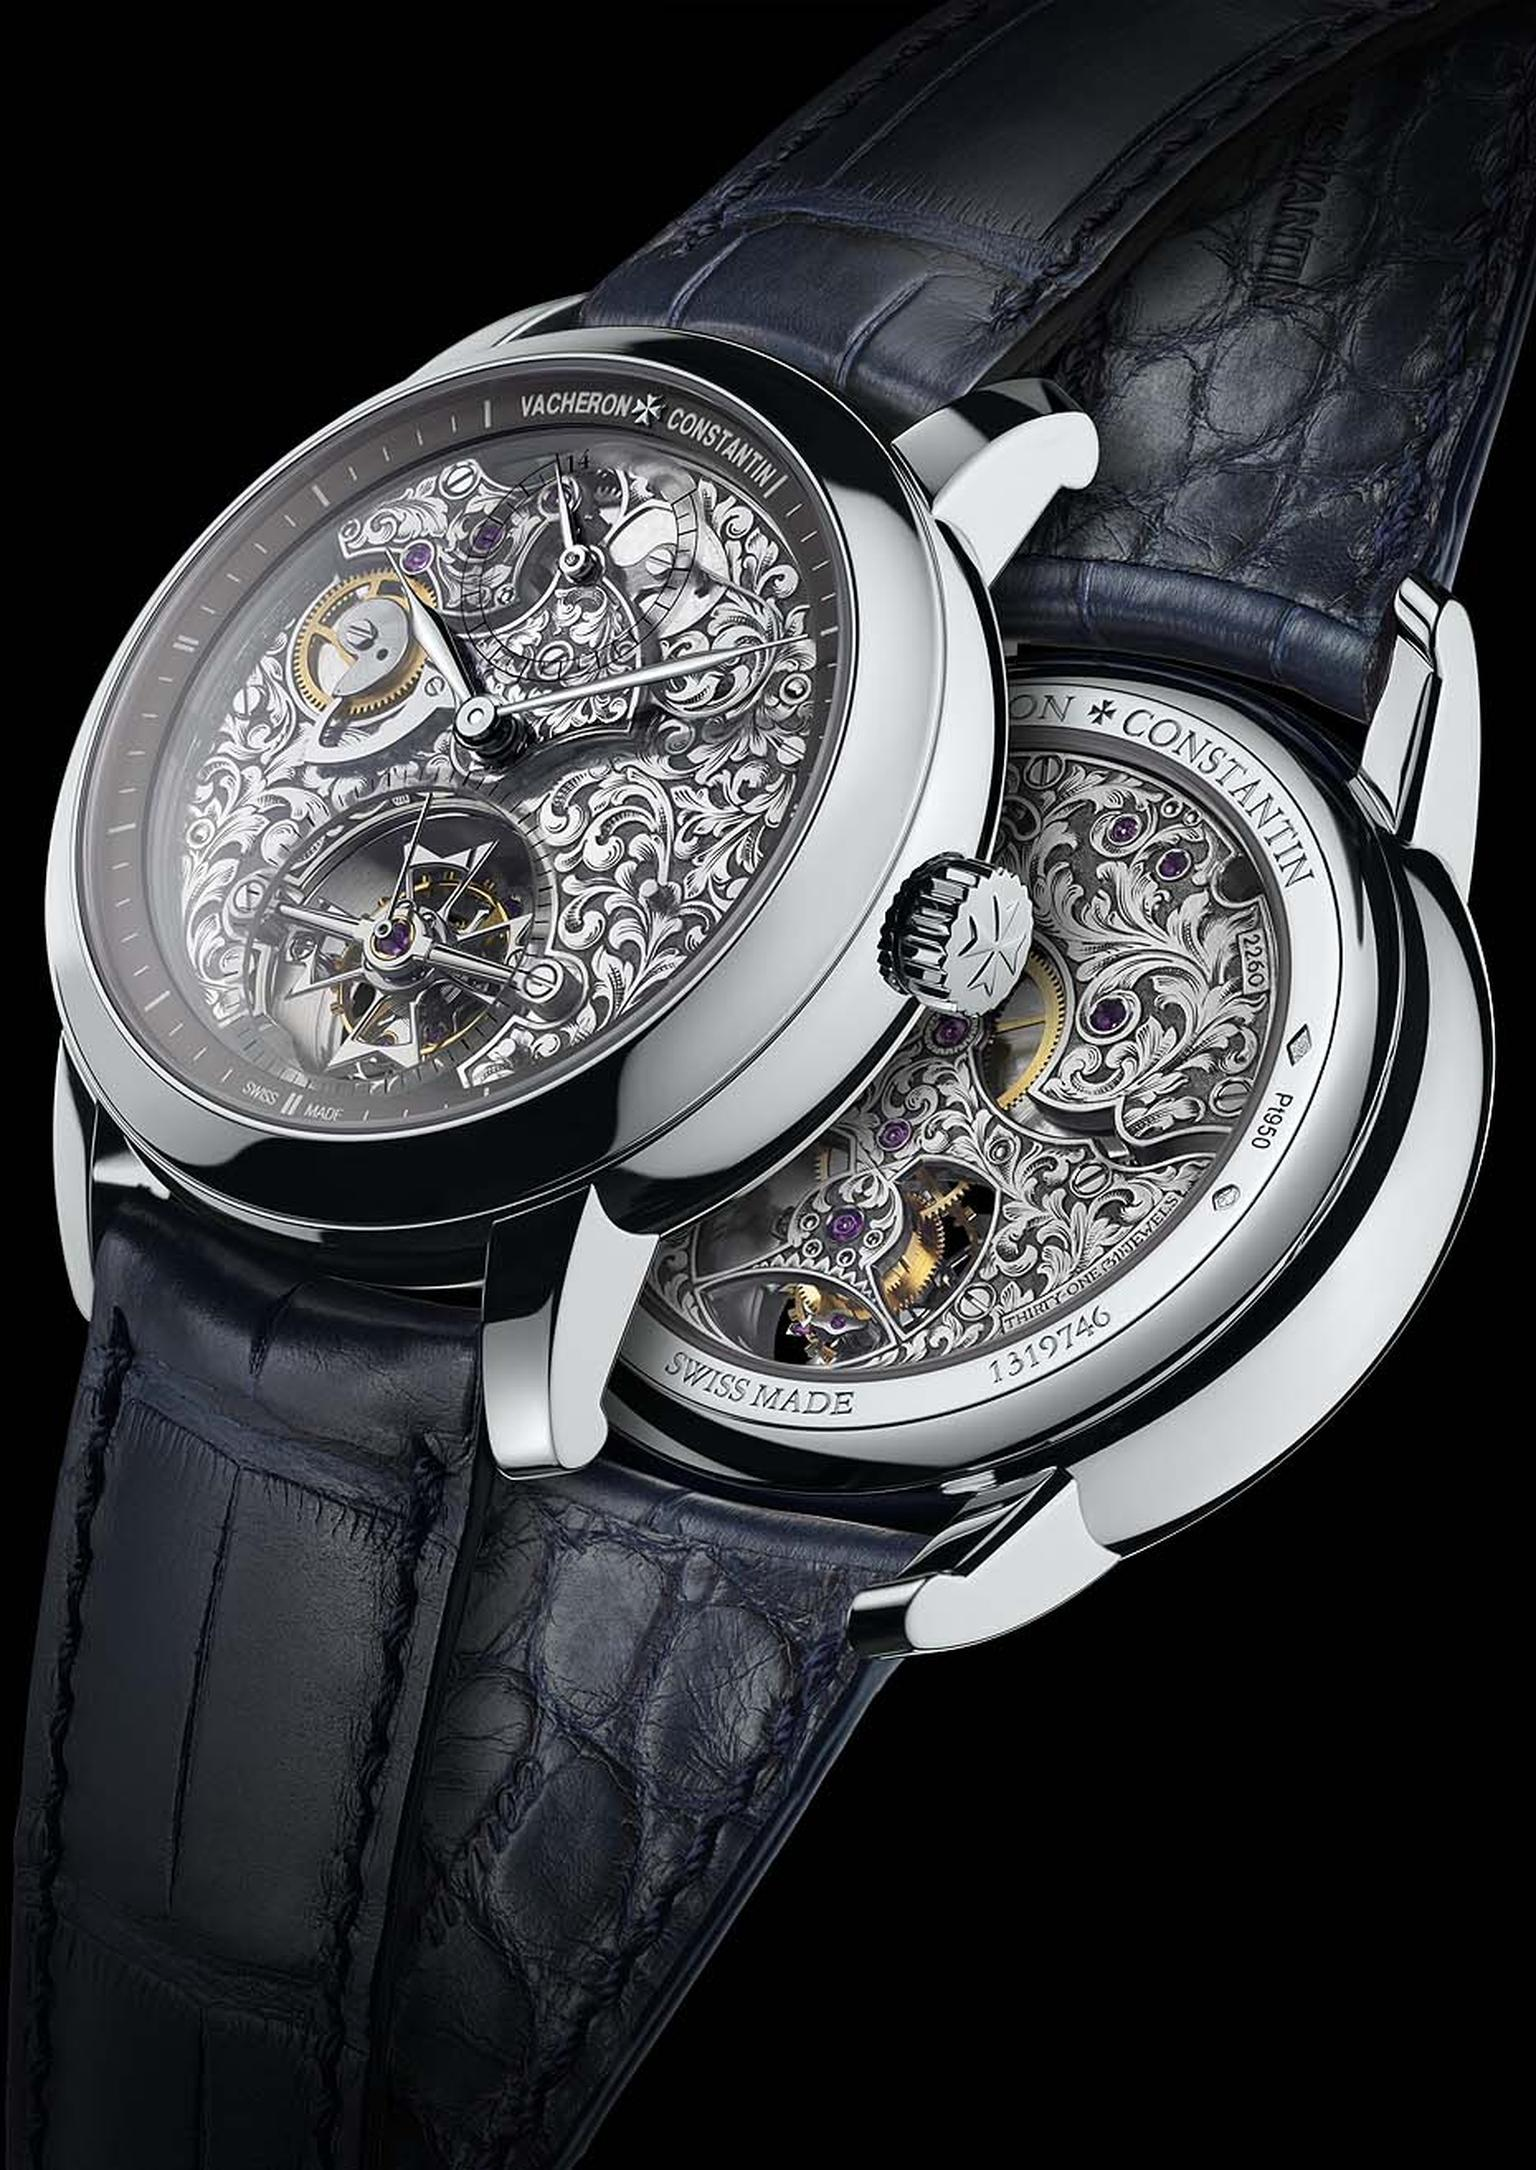 Vacheron Constantin Métiers d'Art Mécaniques Gravées calibre 2260 is the motor behind this 14-day tourbillon. On the dial side, the tourbillon carriage is shaped like a Maltese cross. The movement is housed in a 41mm platinum case.